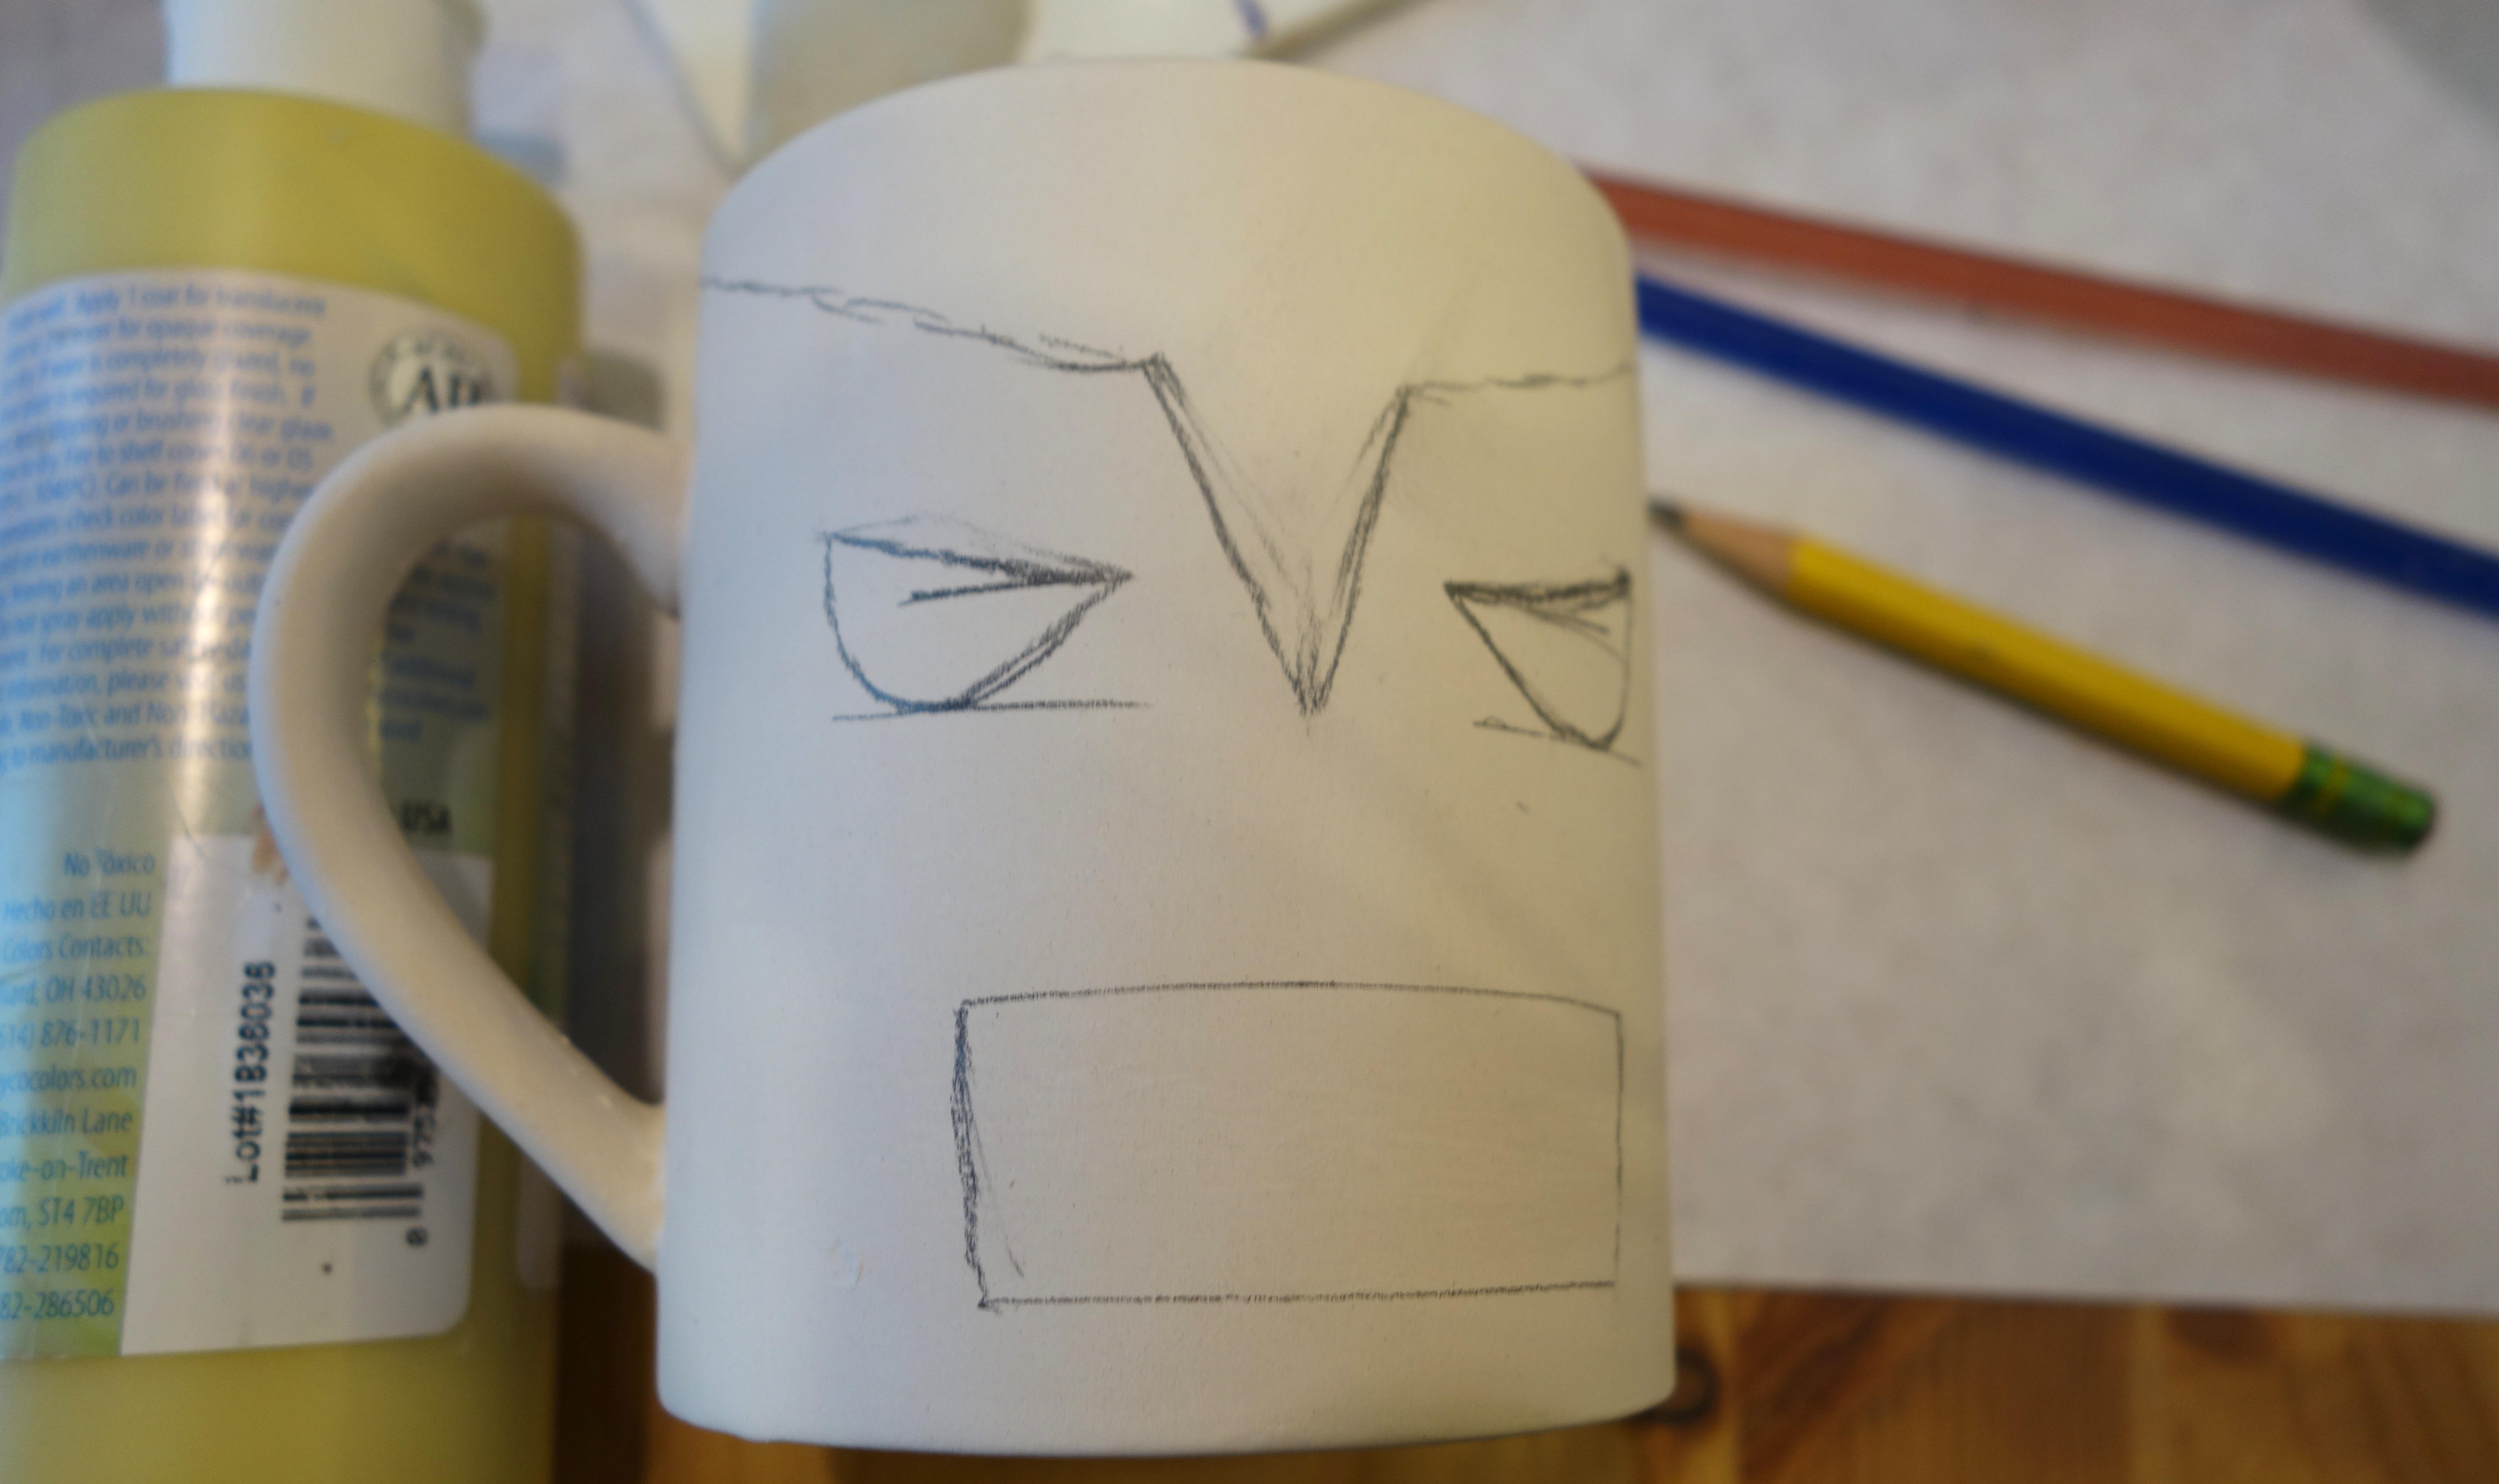 DIY Wolverine Mug Craft - Lightly draw Wolverine's face and mask